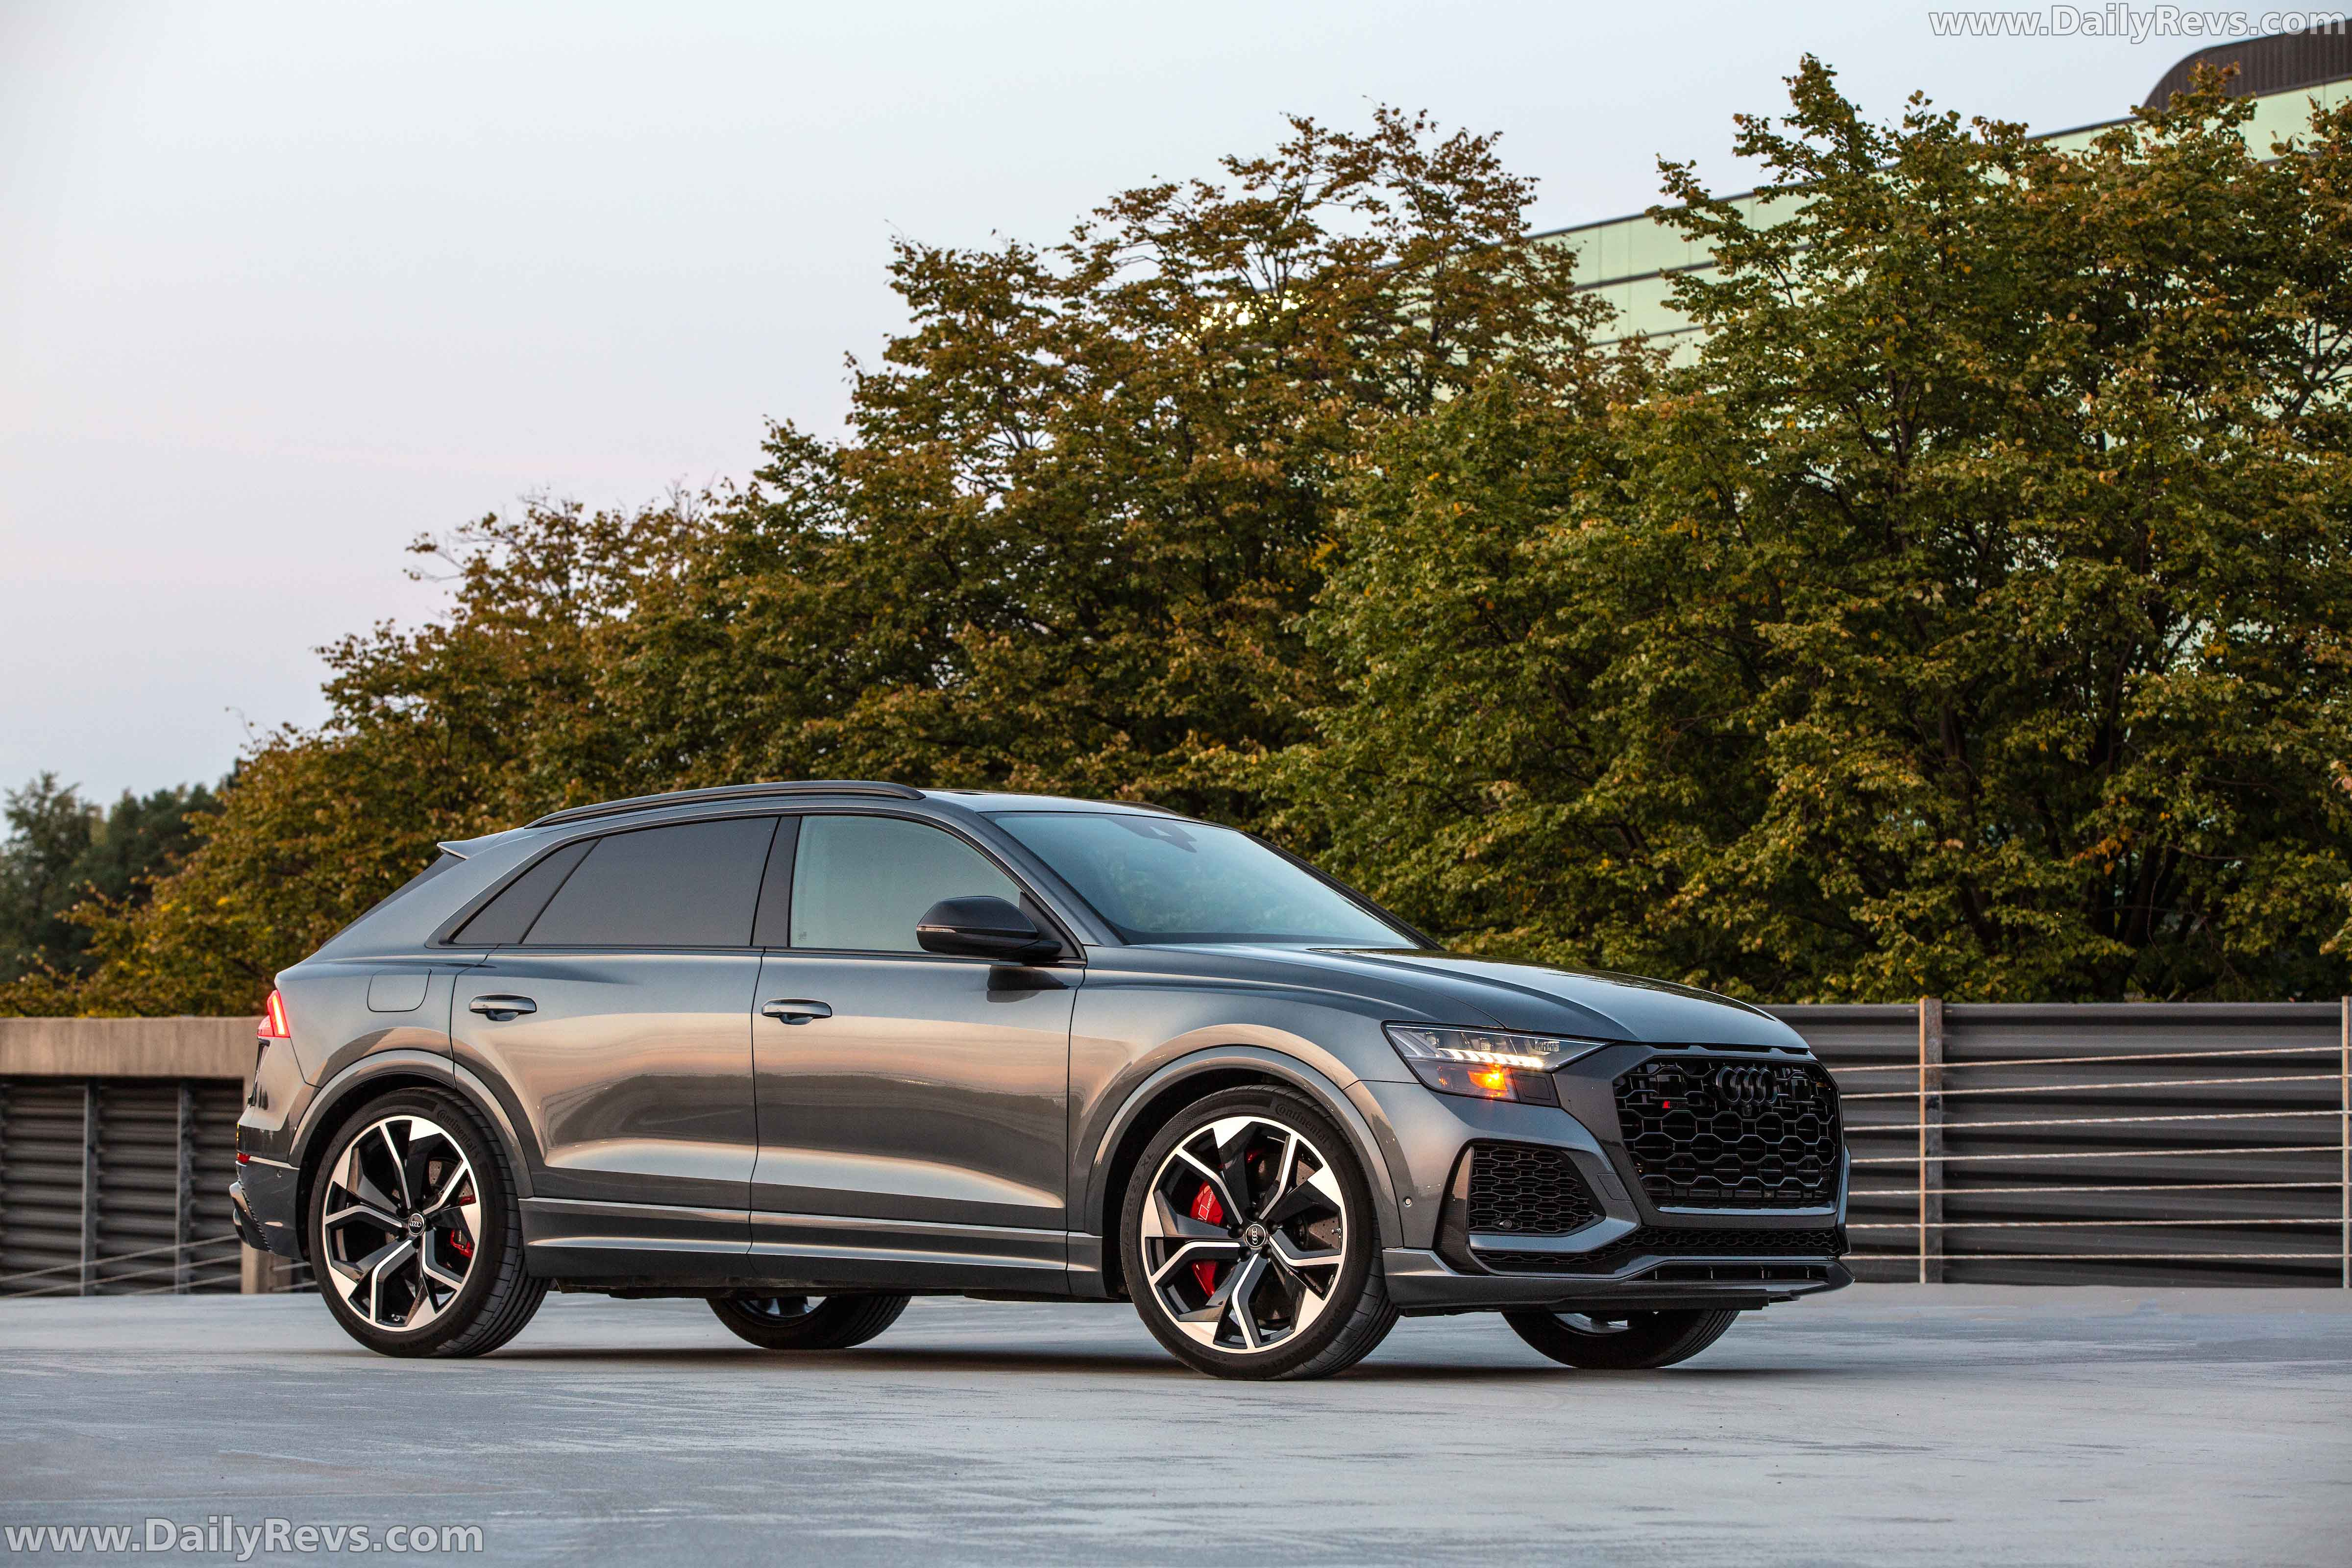 2021 Audi RS Q8 - US Version - Dailyrevs